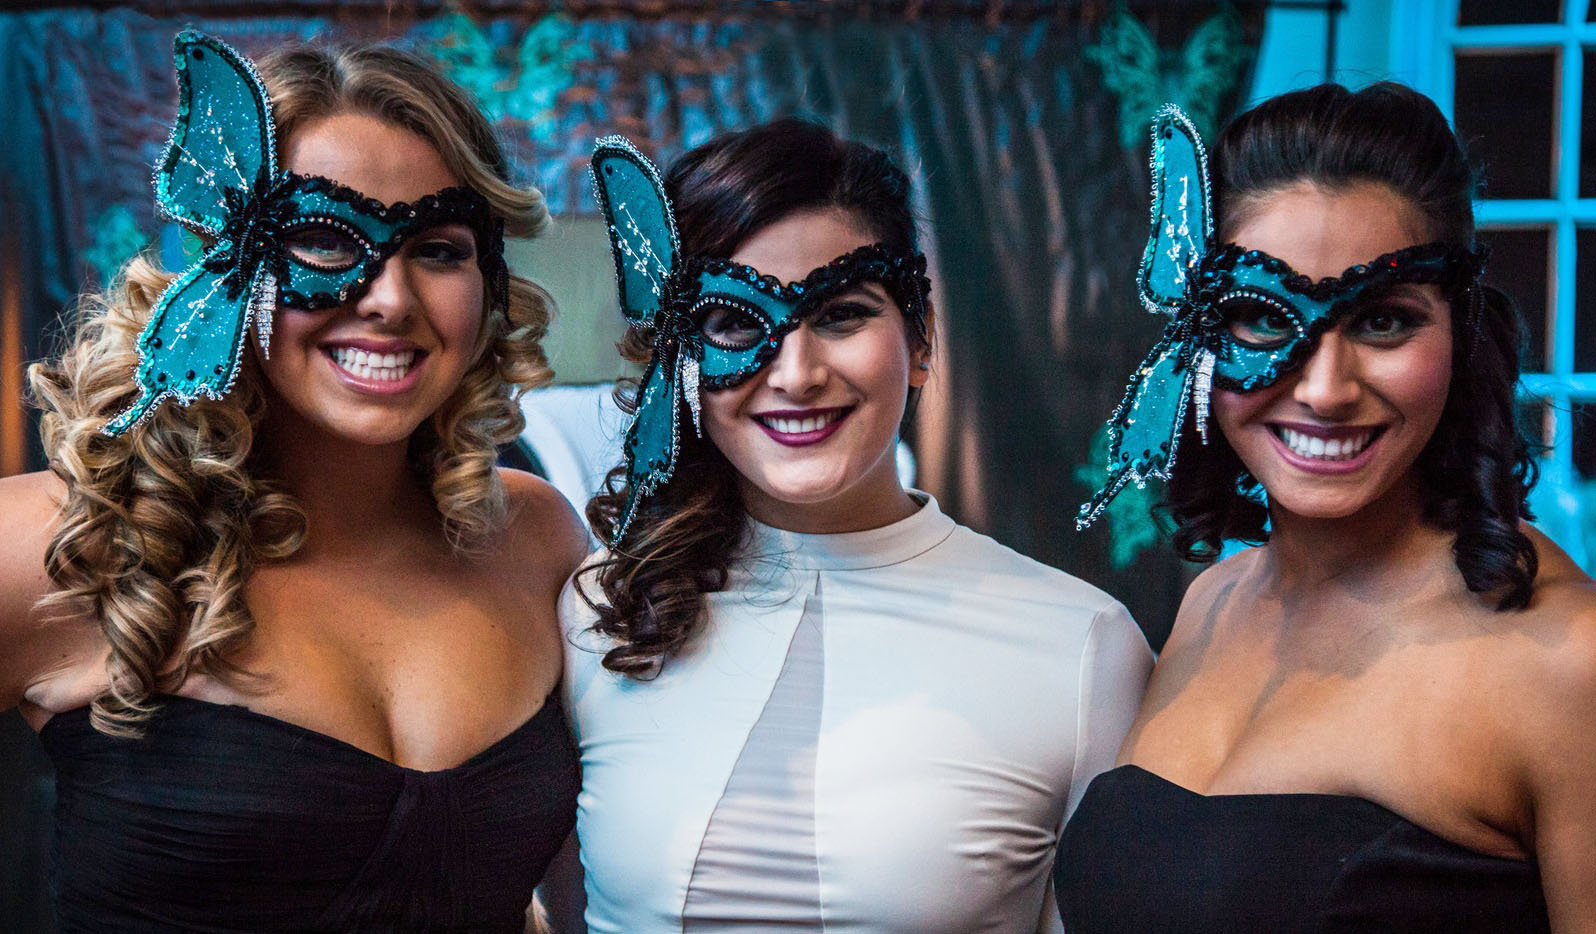 """Custom masks designed for the """"butterfly effect"""" theme of the masquerade charity event"""